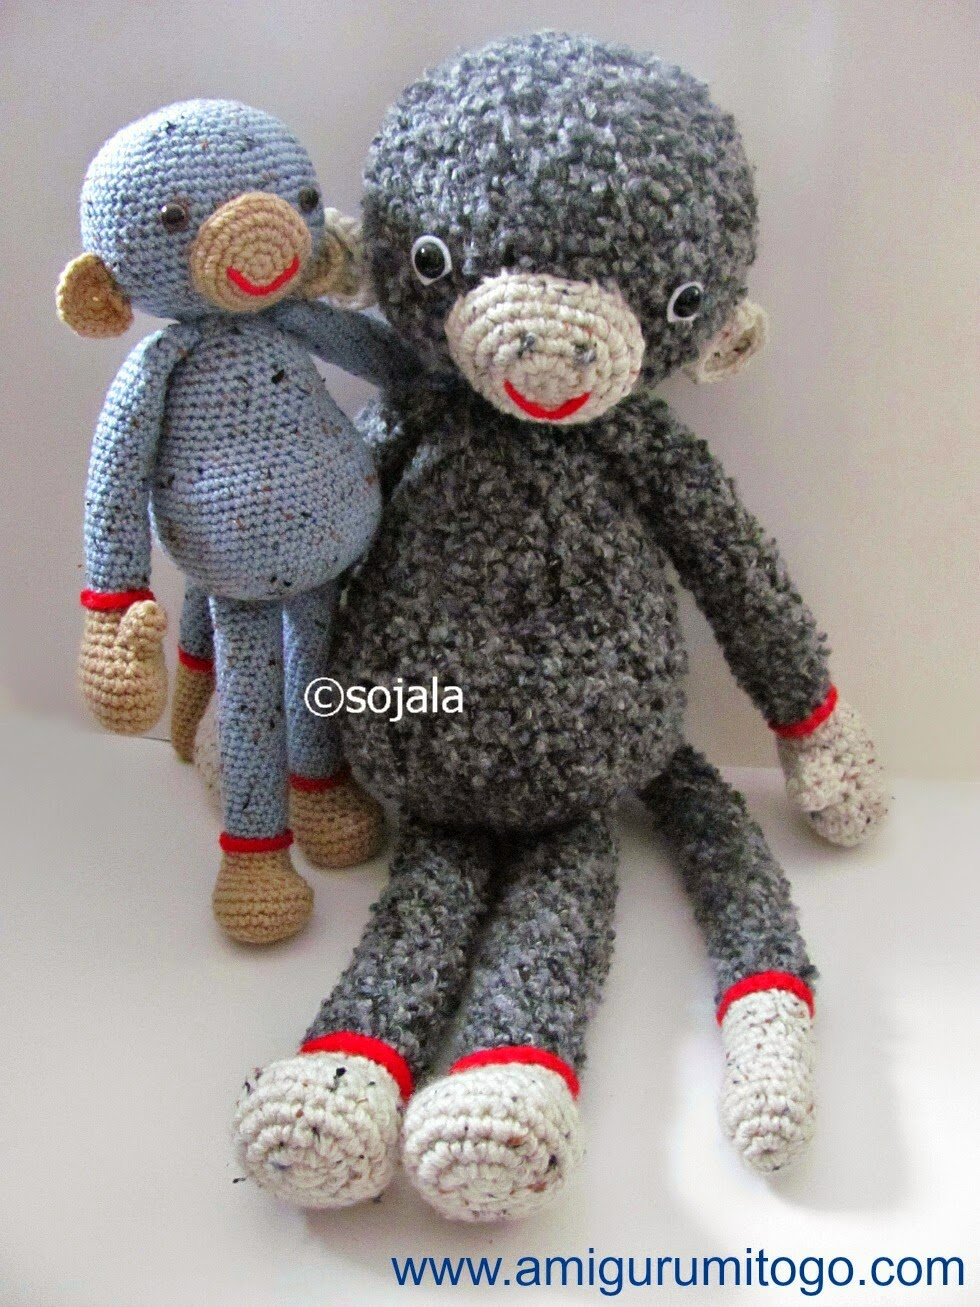 Amigurumitogo Sock Monkey : Monkey Video Tutorial ~ Amigurumi To Go